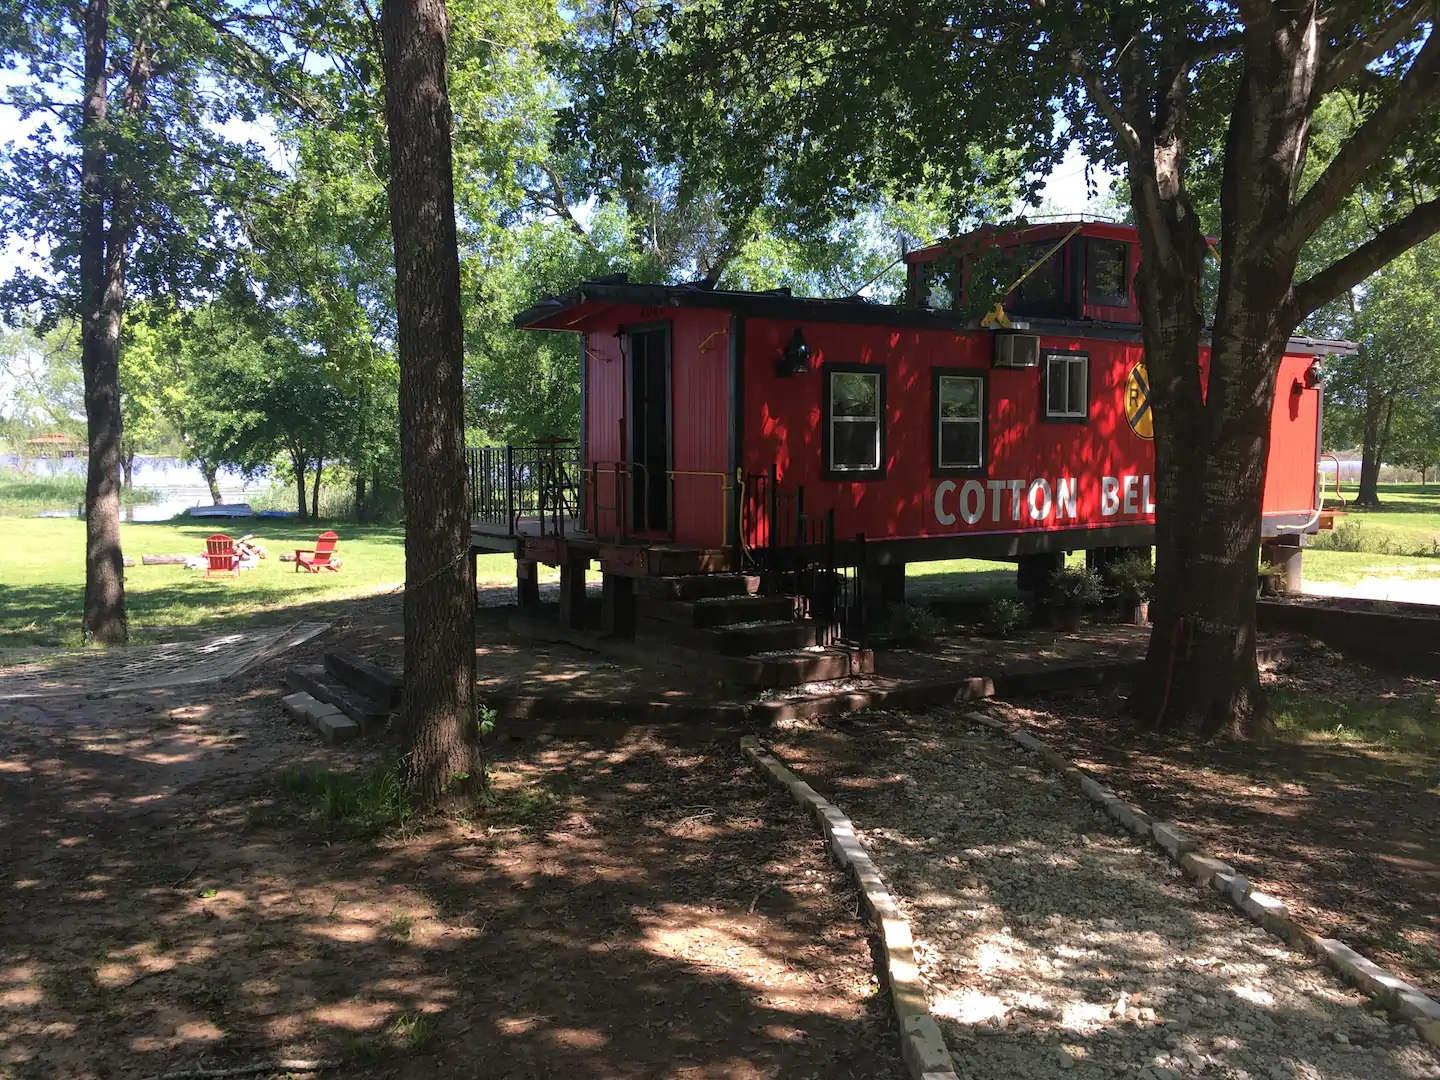 Photo of a red 1920's vintage caboose Airbnb.